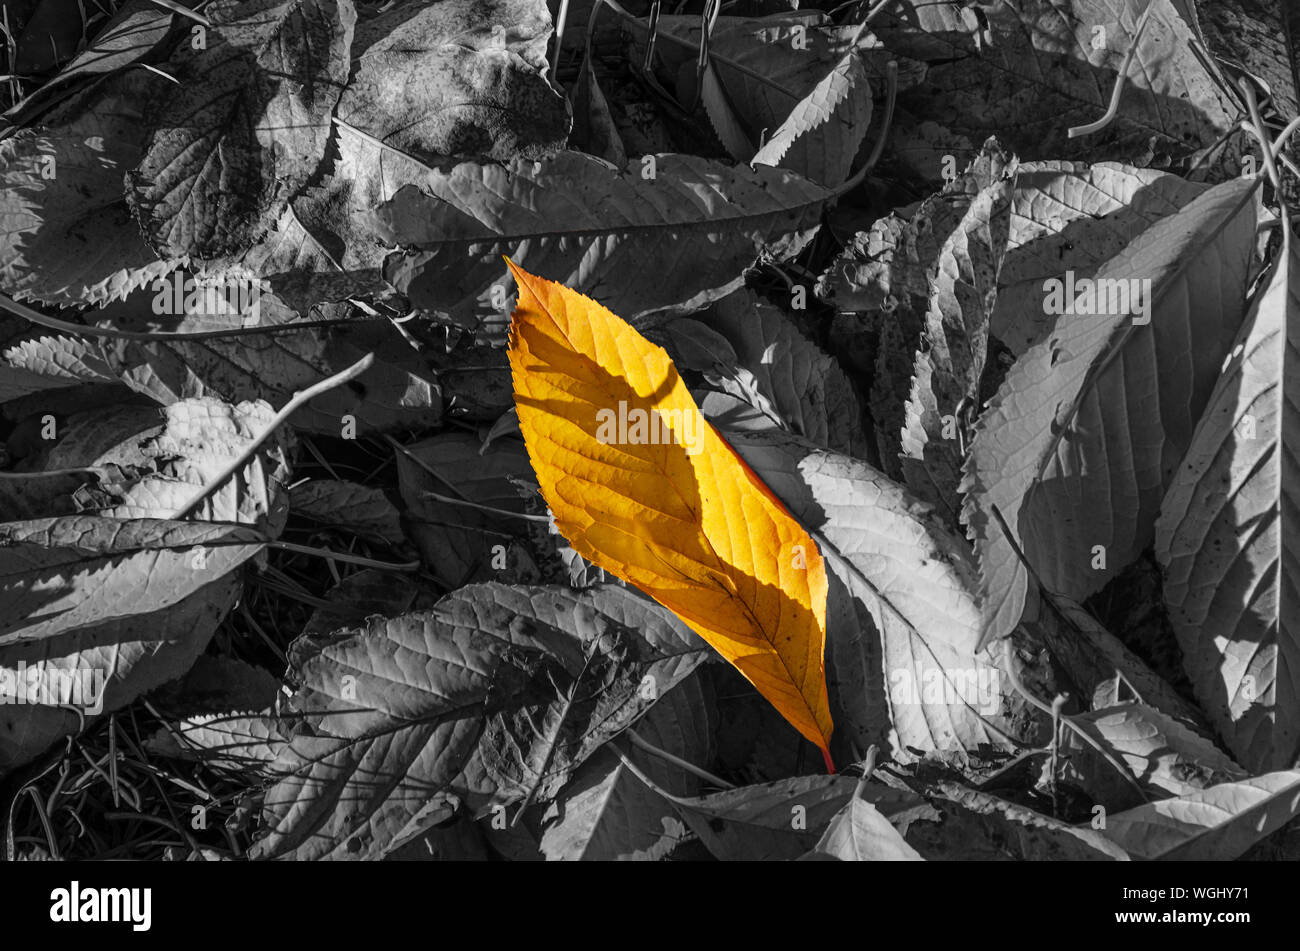 Fallen colorless leaves, among them one bright yellow. Uniqueness, difference, individuality and standing out from the crowd concept Stock Photo